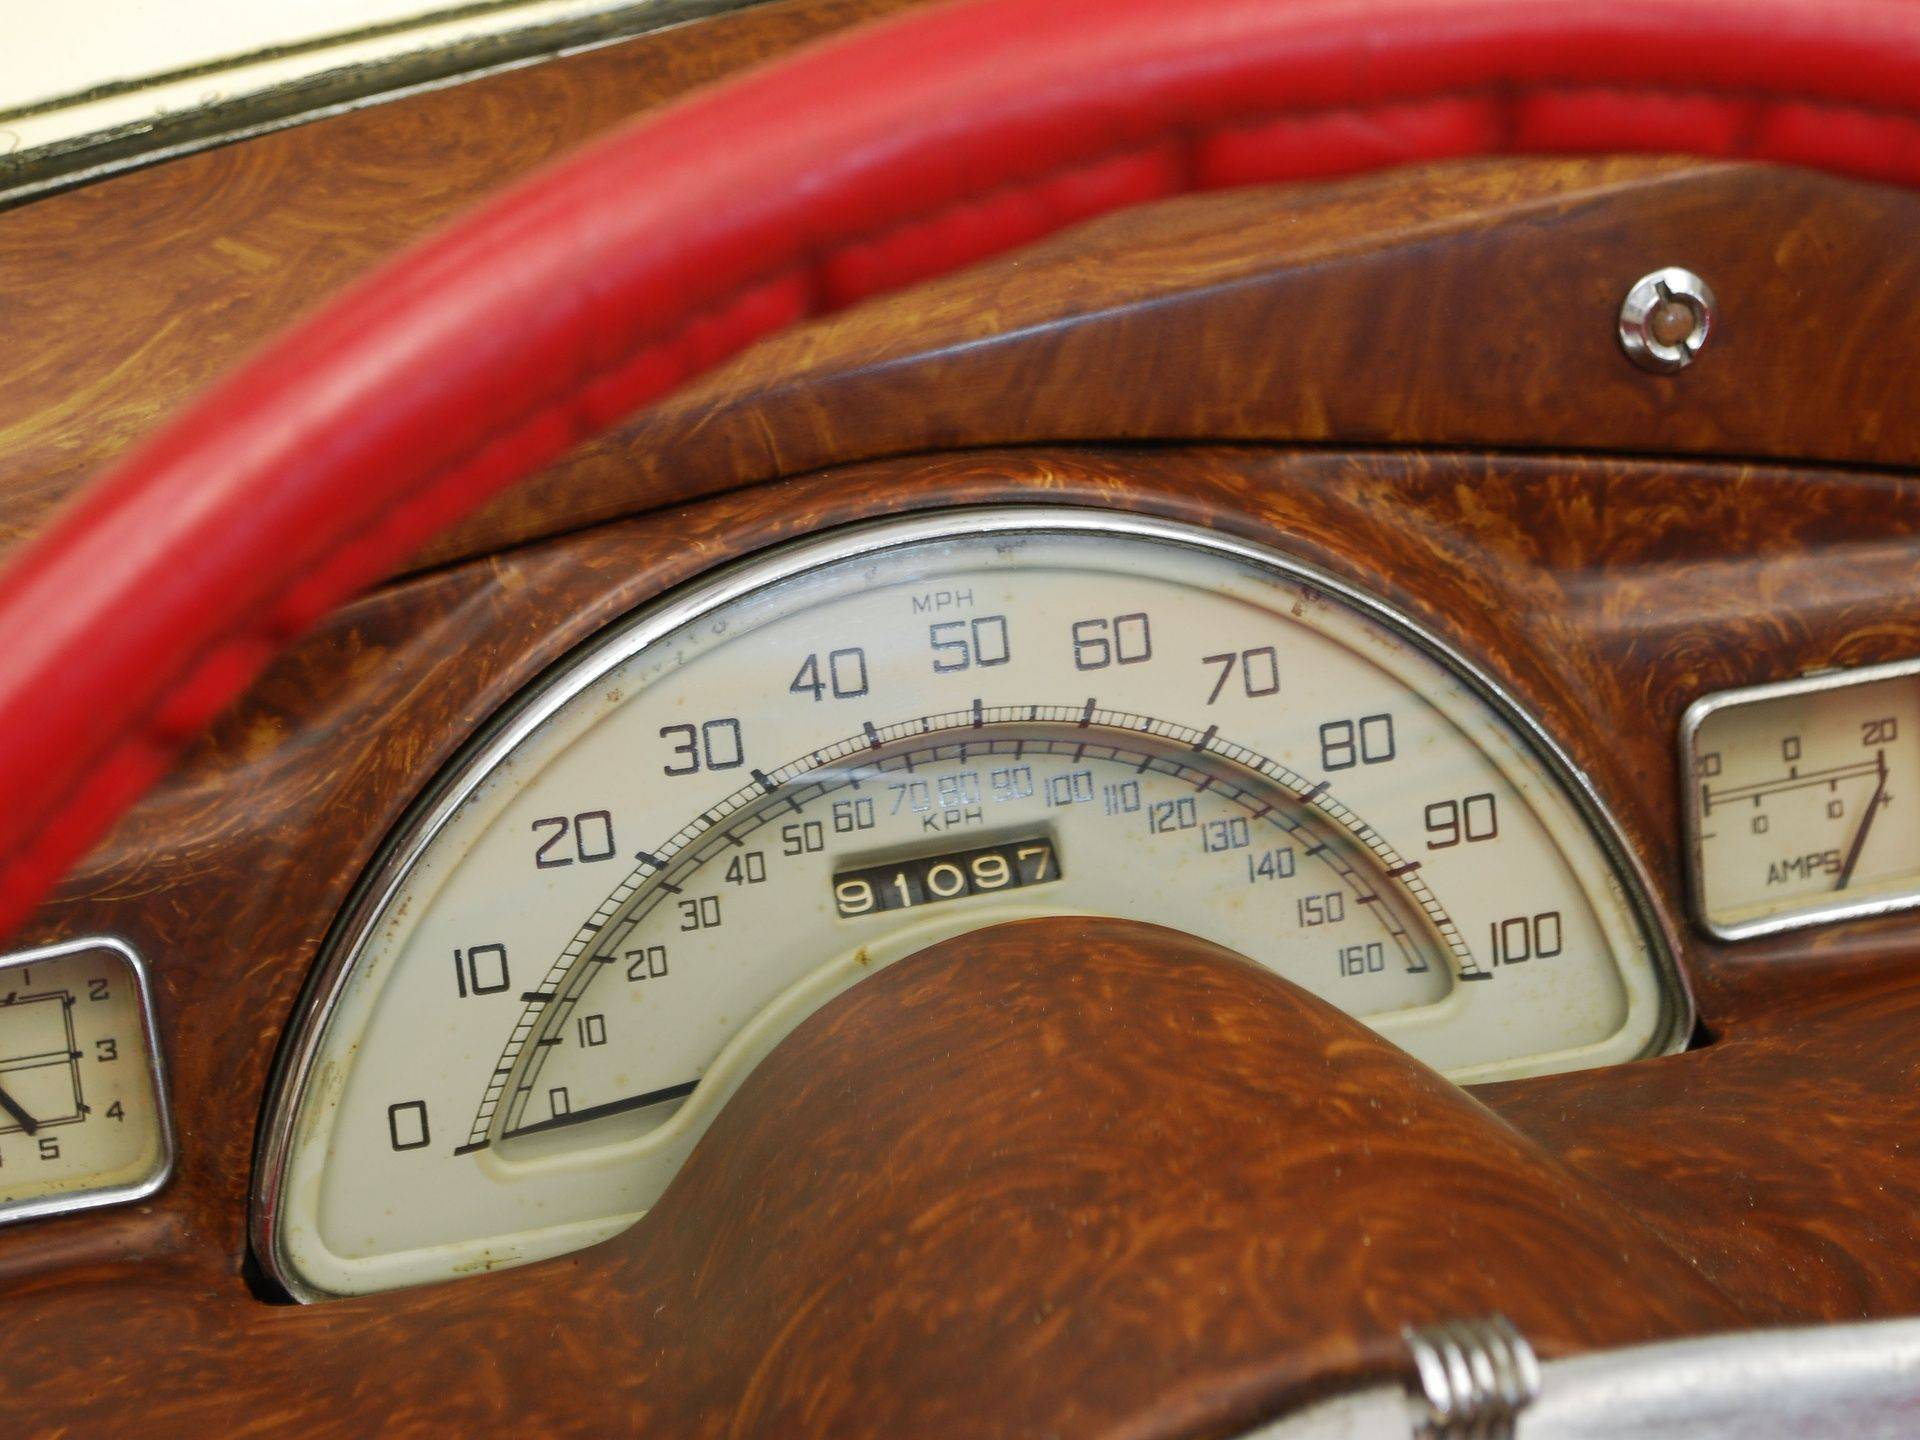 1950 Sunbeam Talbot Mk1 dashboard